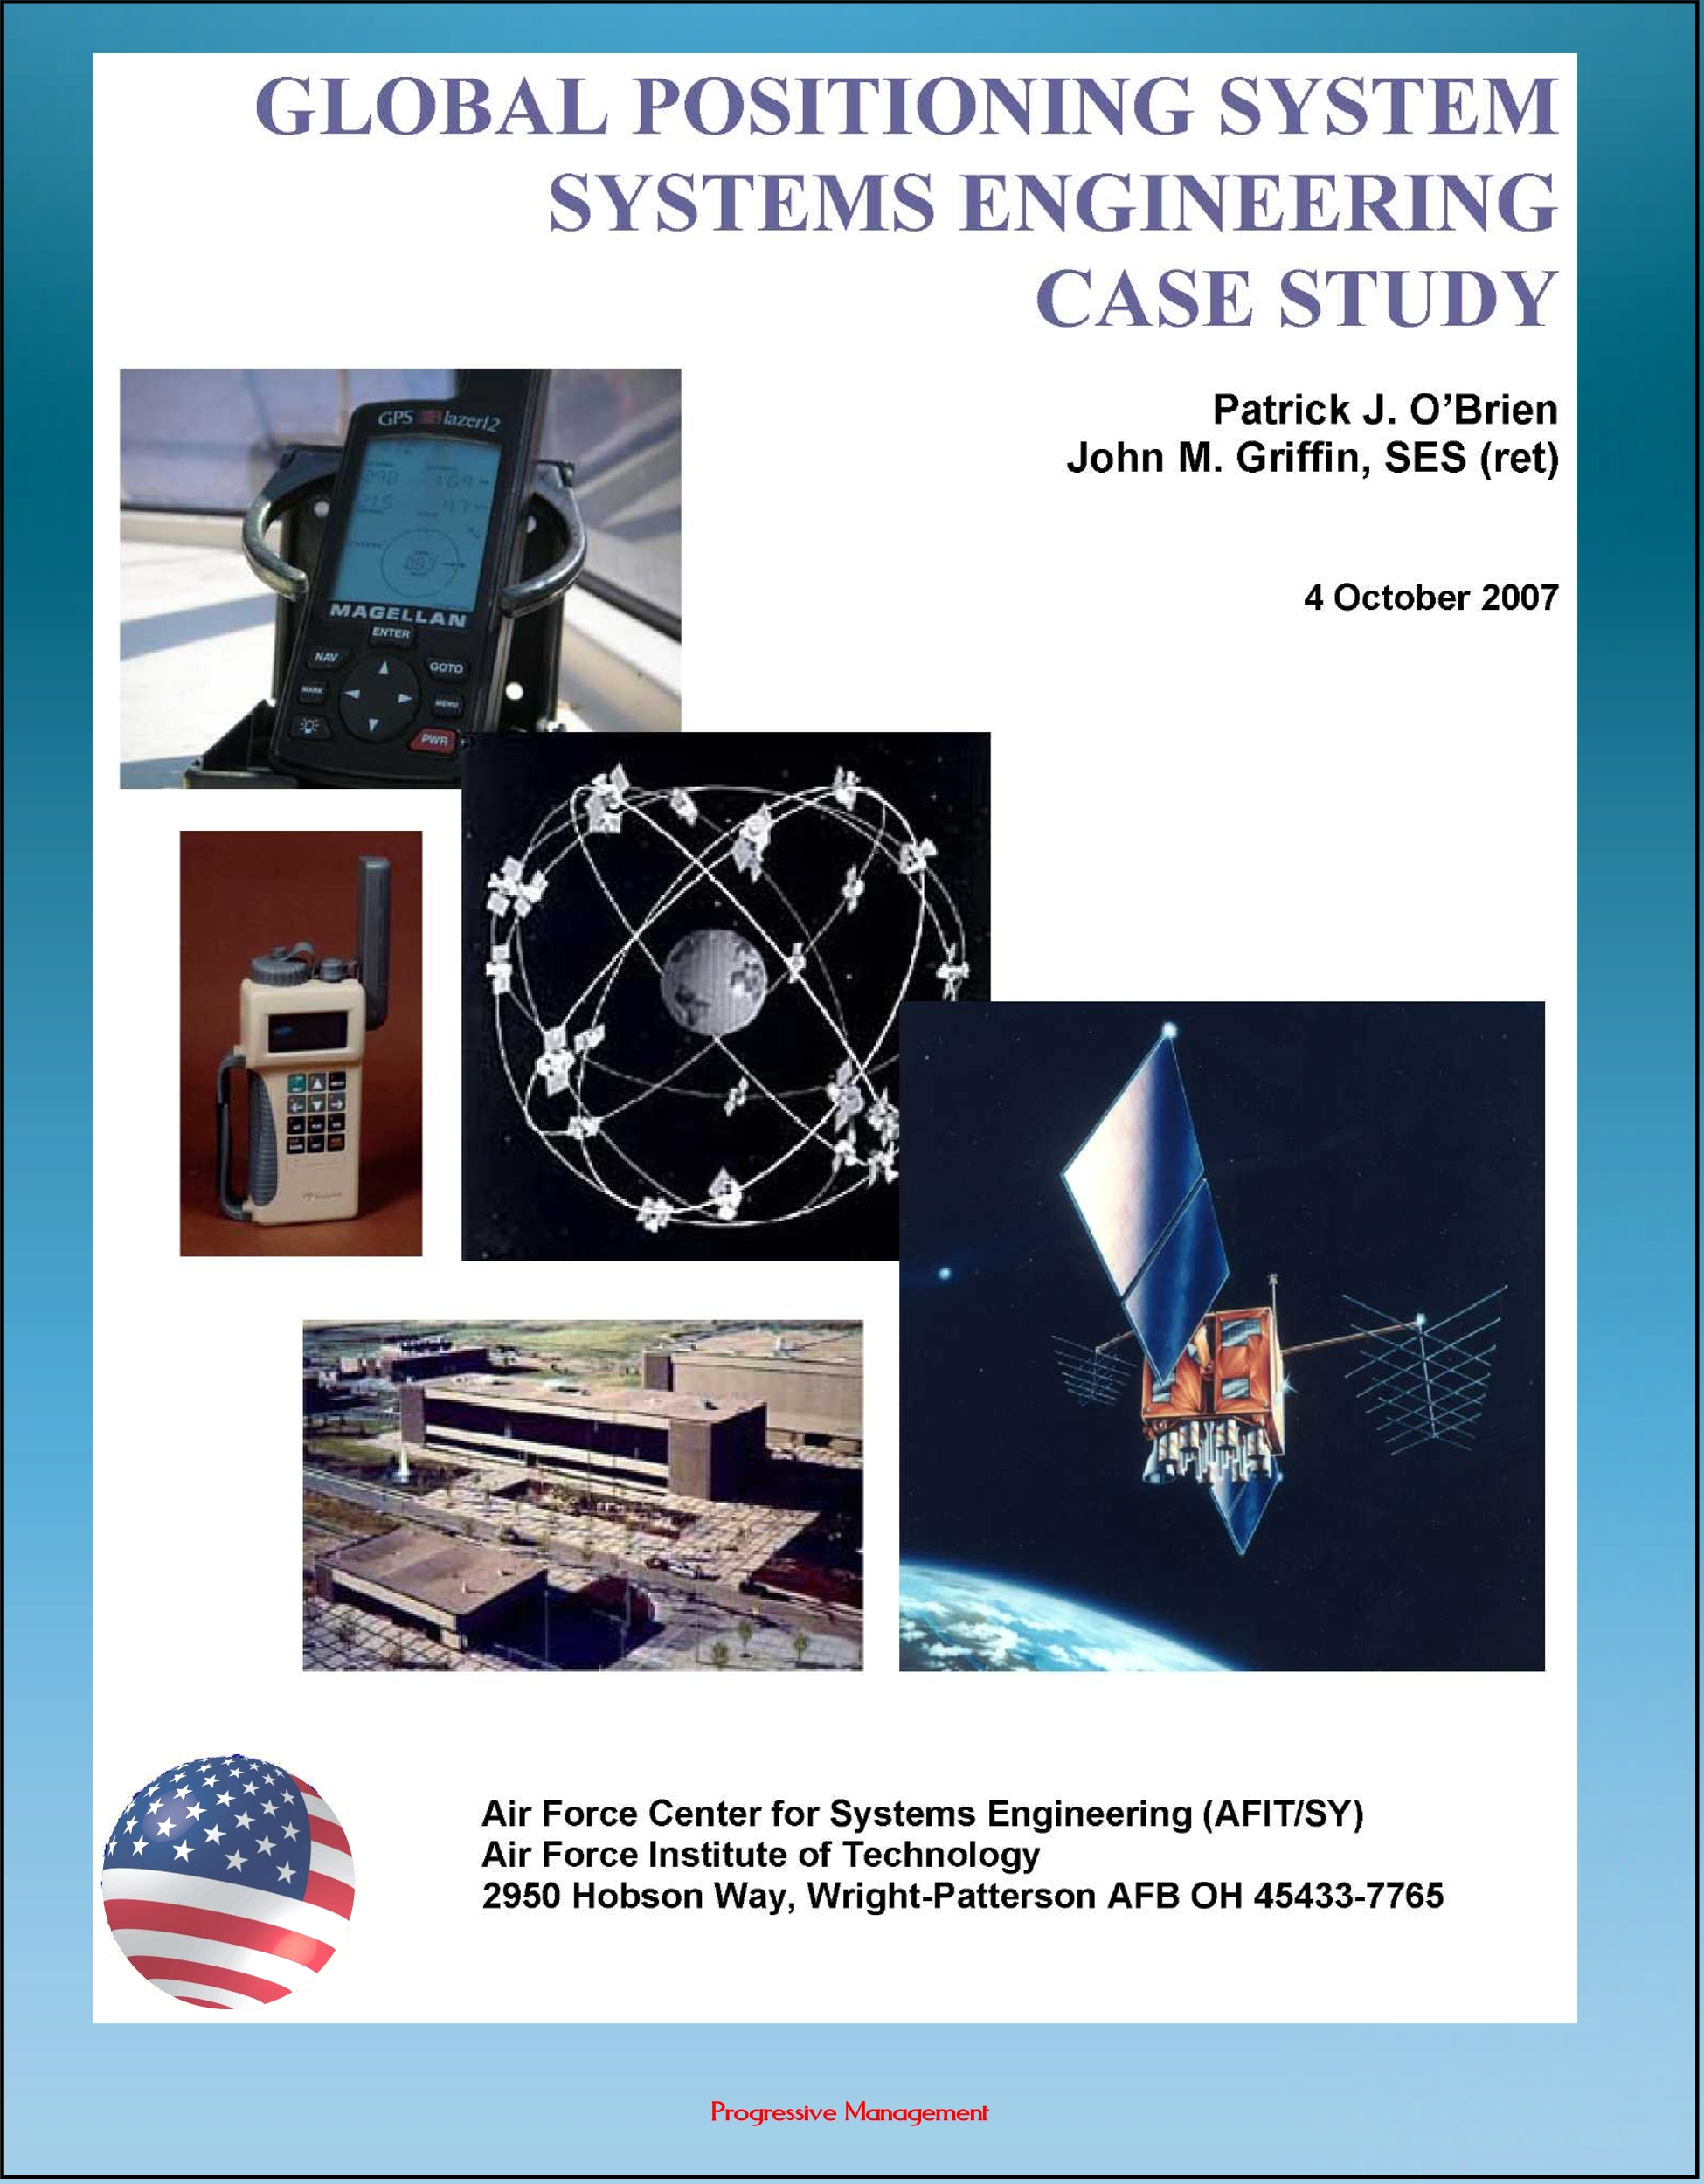 case study s s air inc S&s air, inc backround info founded by mark sexton and todd story manufactures and sells personal aircrafts objective: using the financial statements provided, calculate different ratios, find the best aspirant company, and create competitive analysis by comparing ratios.